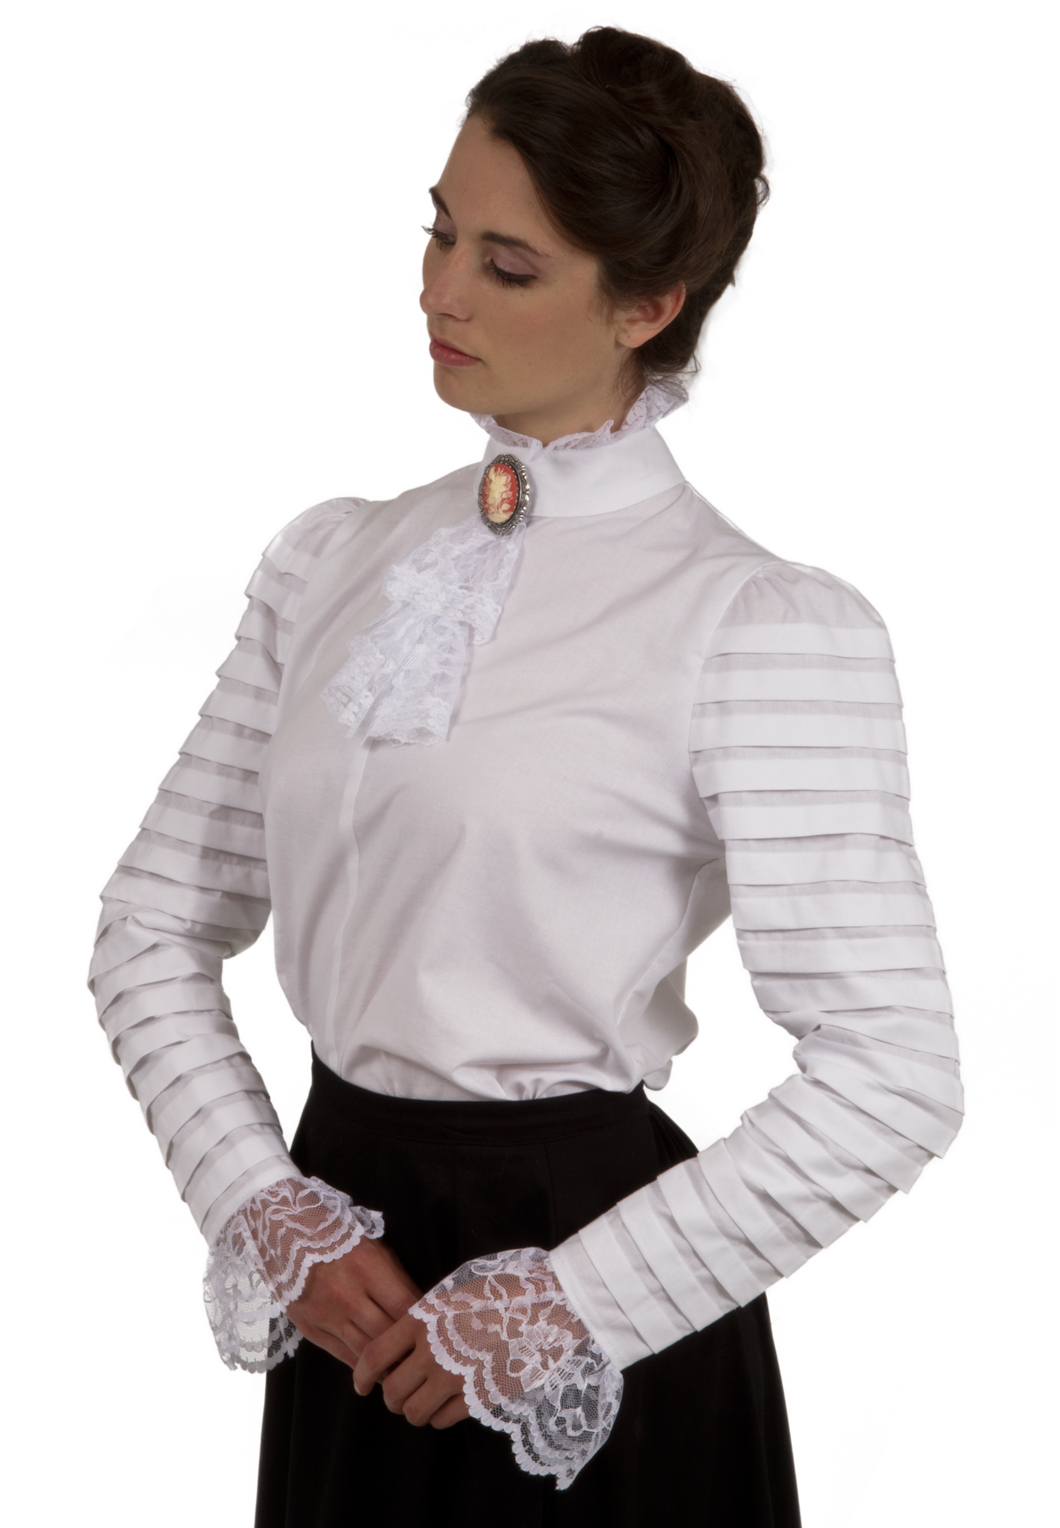 Blanche Edwardian Blouse Recollections